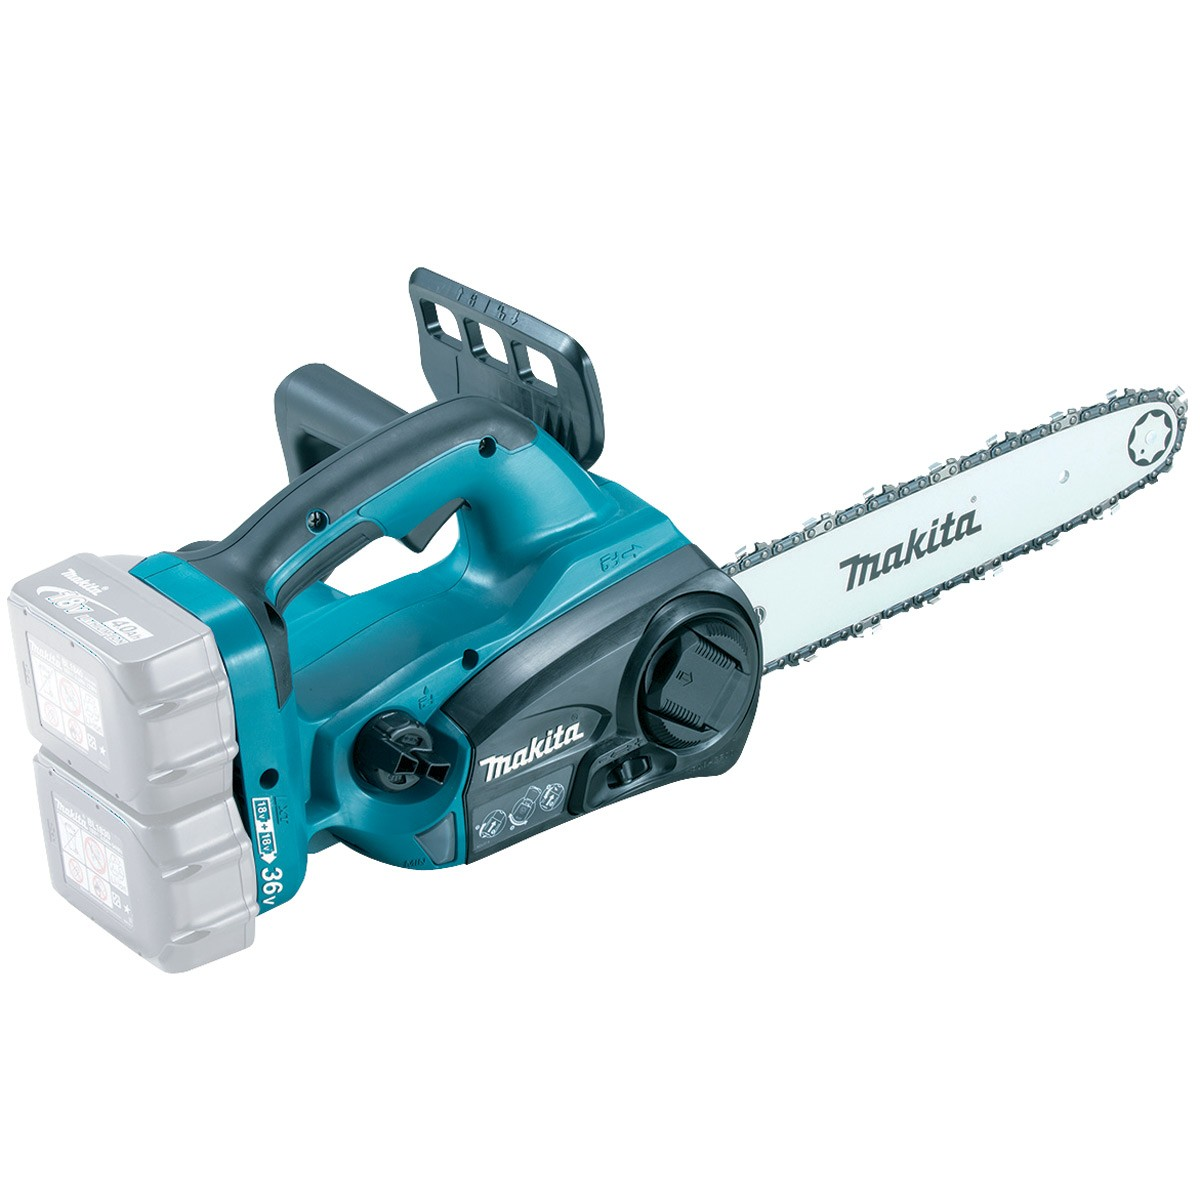 Makita DUC302Z Twin 18v LXT Cordless Chainsaw Body Only